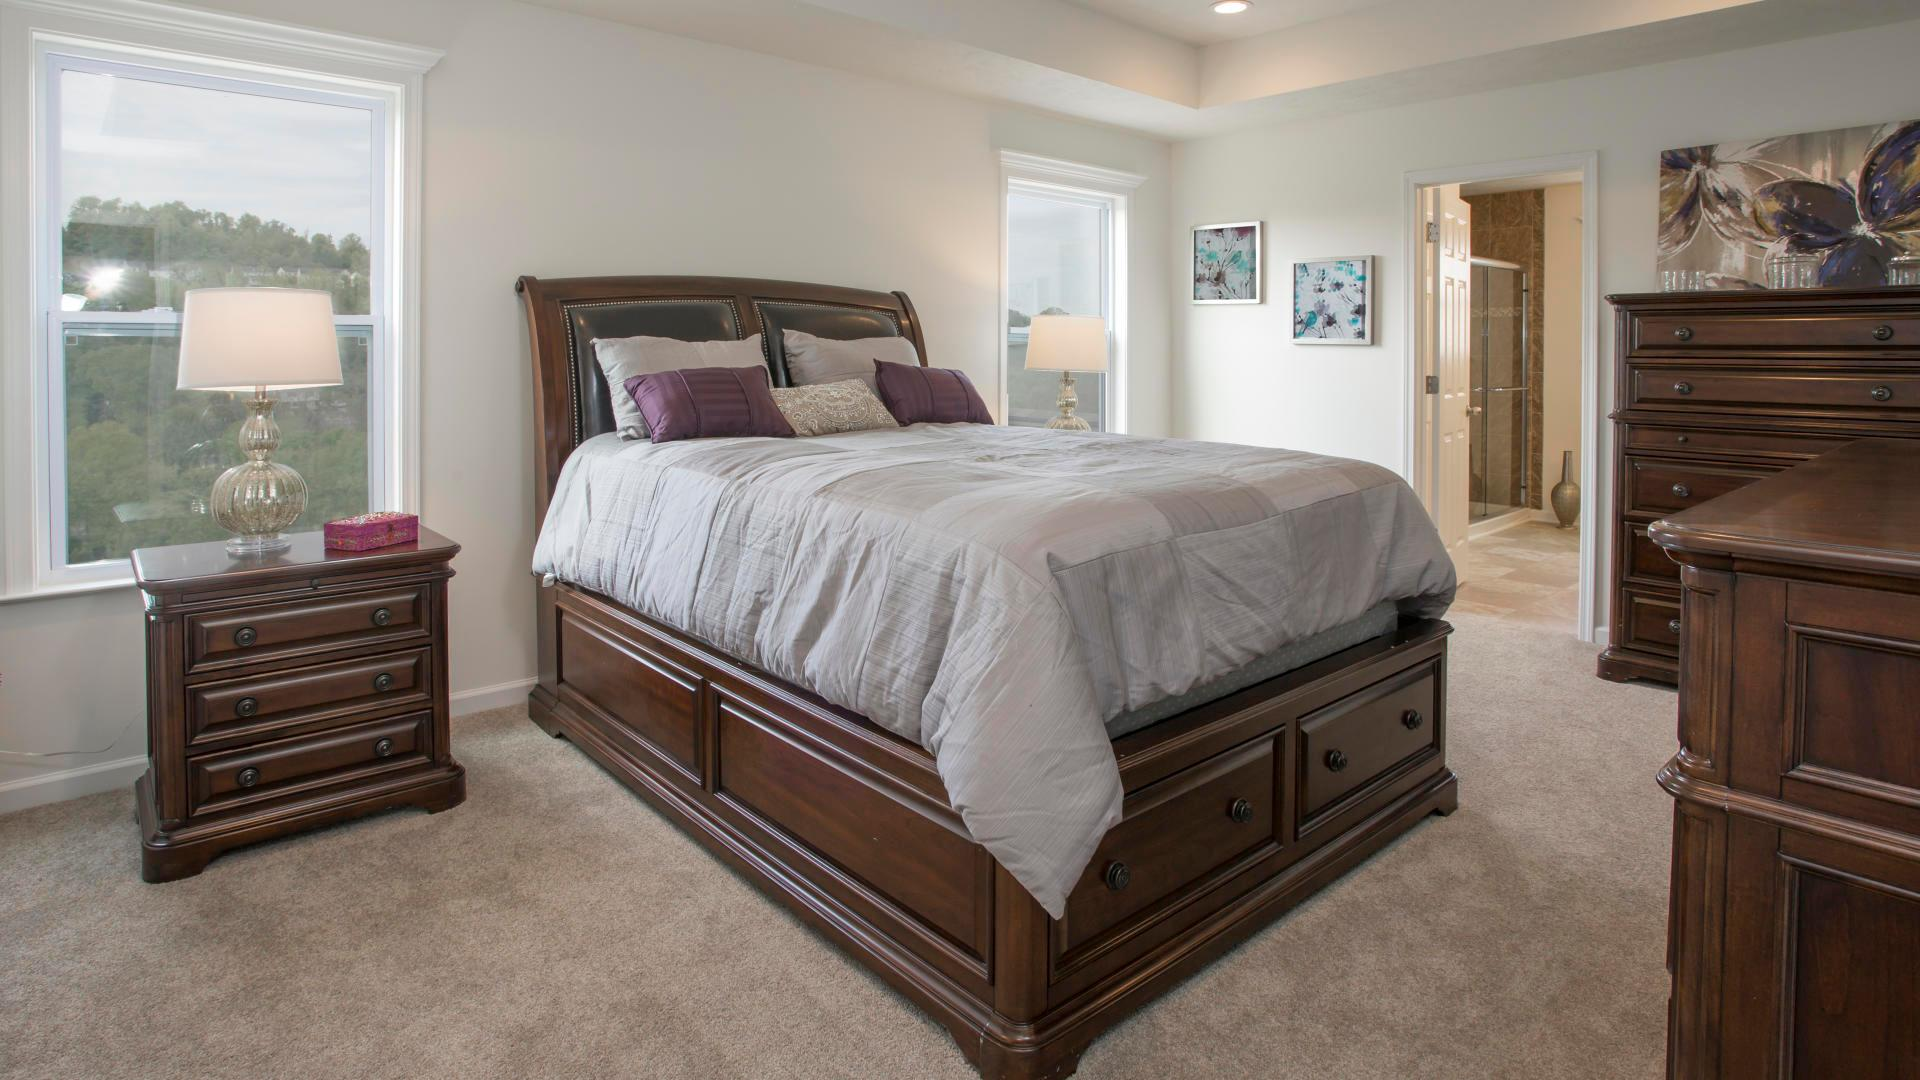 Bedroom featured in the Rockford By Maronda Homes in Columbus, OH